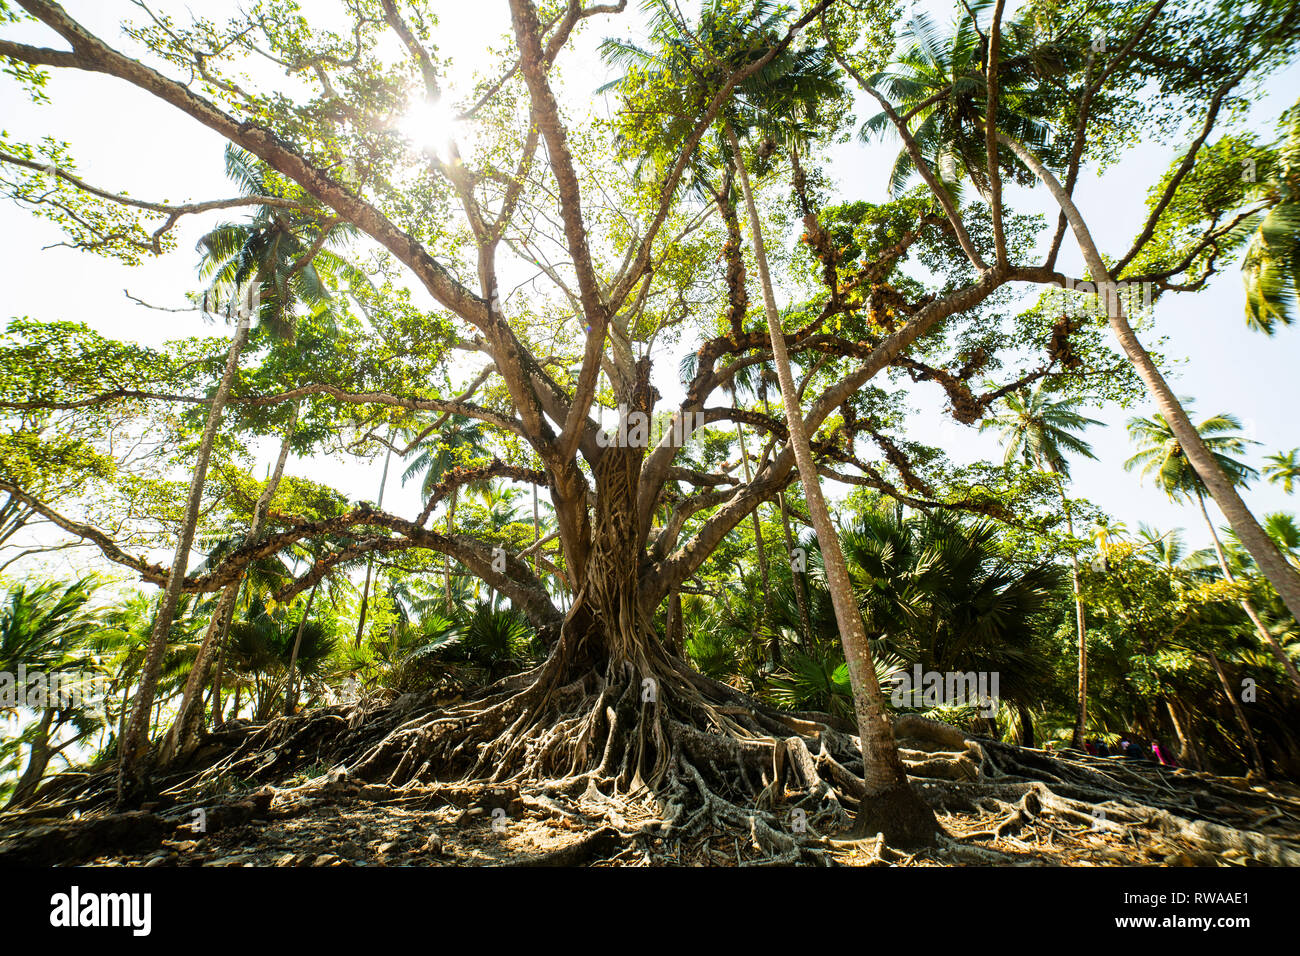 An impressive tree and root systems found on Ross Island. - Stock Image